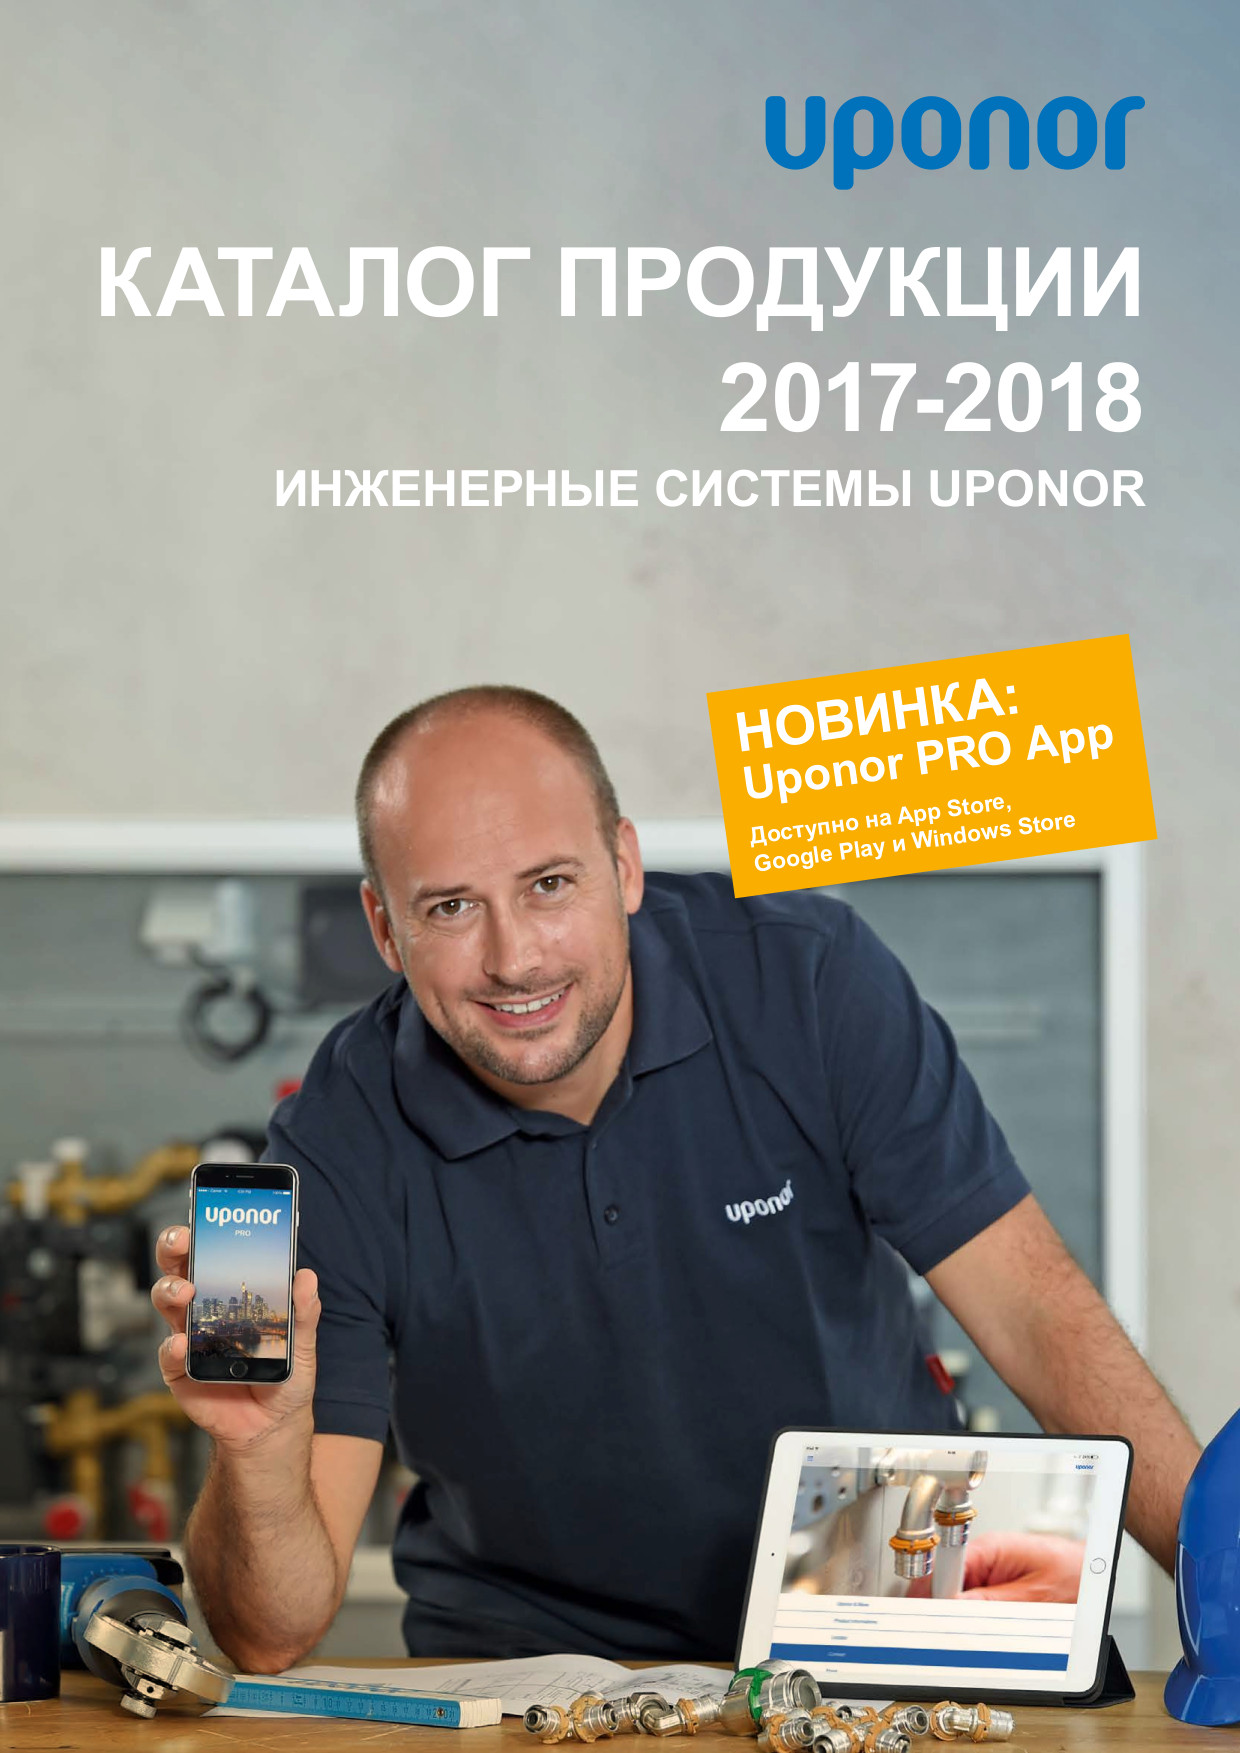 uponor_catalog 2017-2018